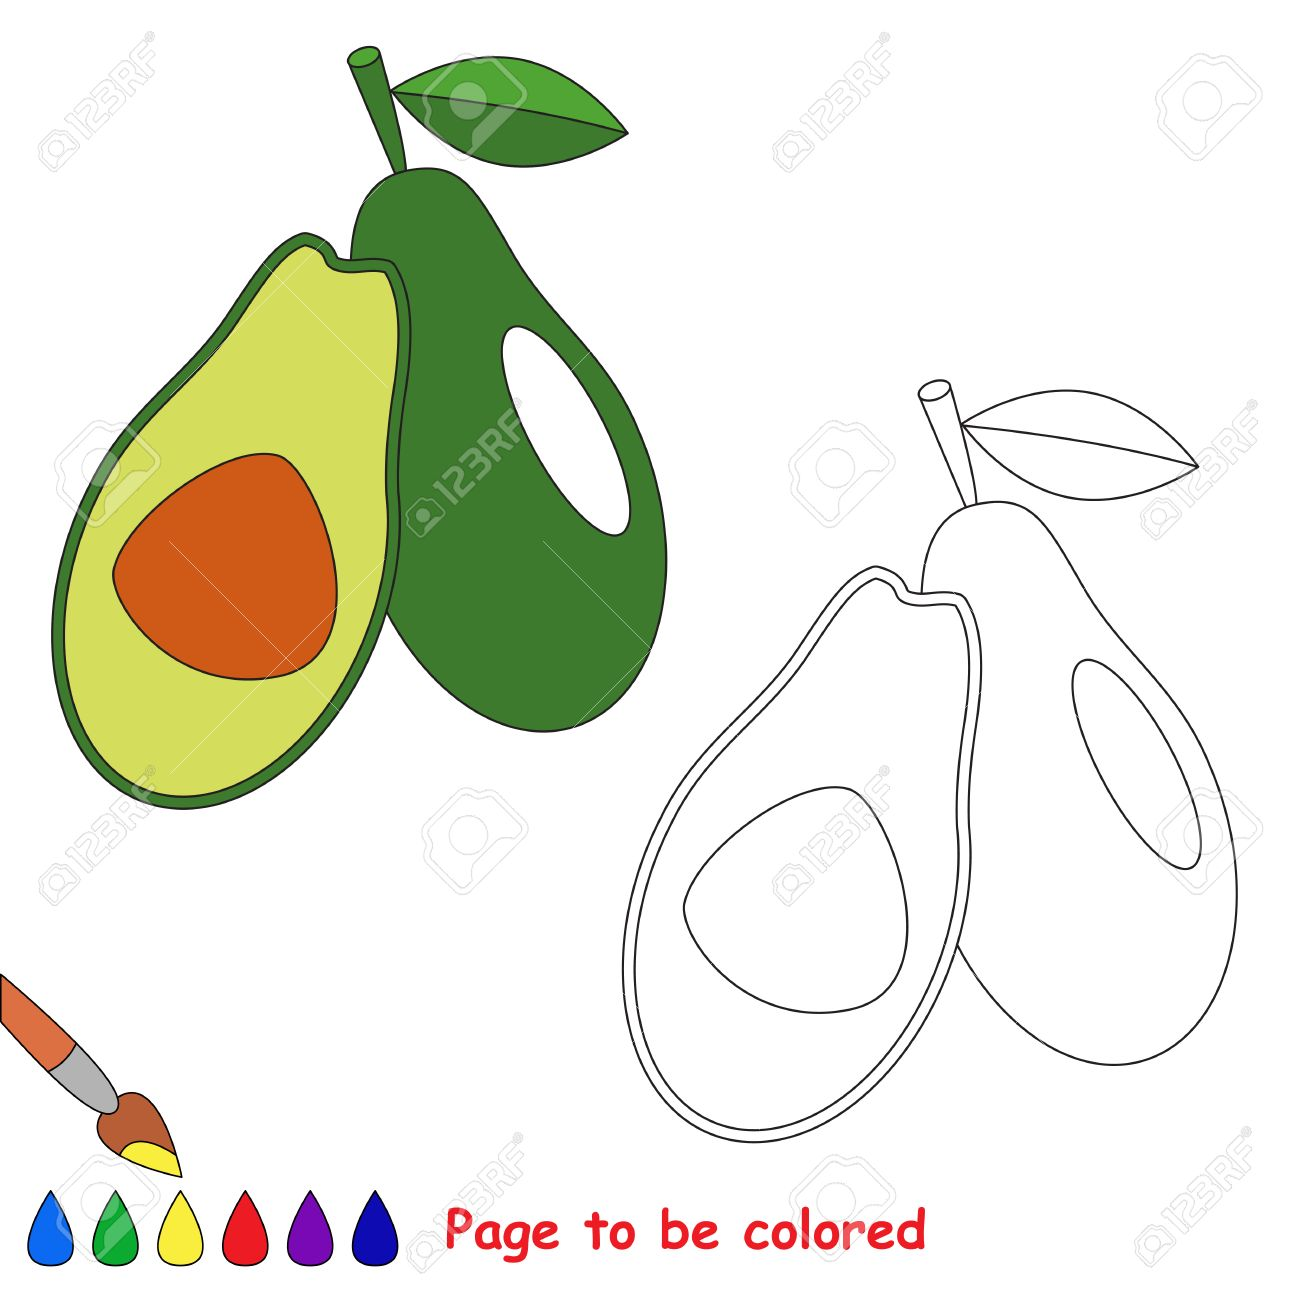 Green Avocado To Be Colored. Coloring Book To Educate Kids. Learn ...